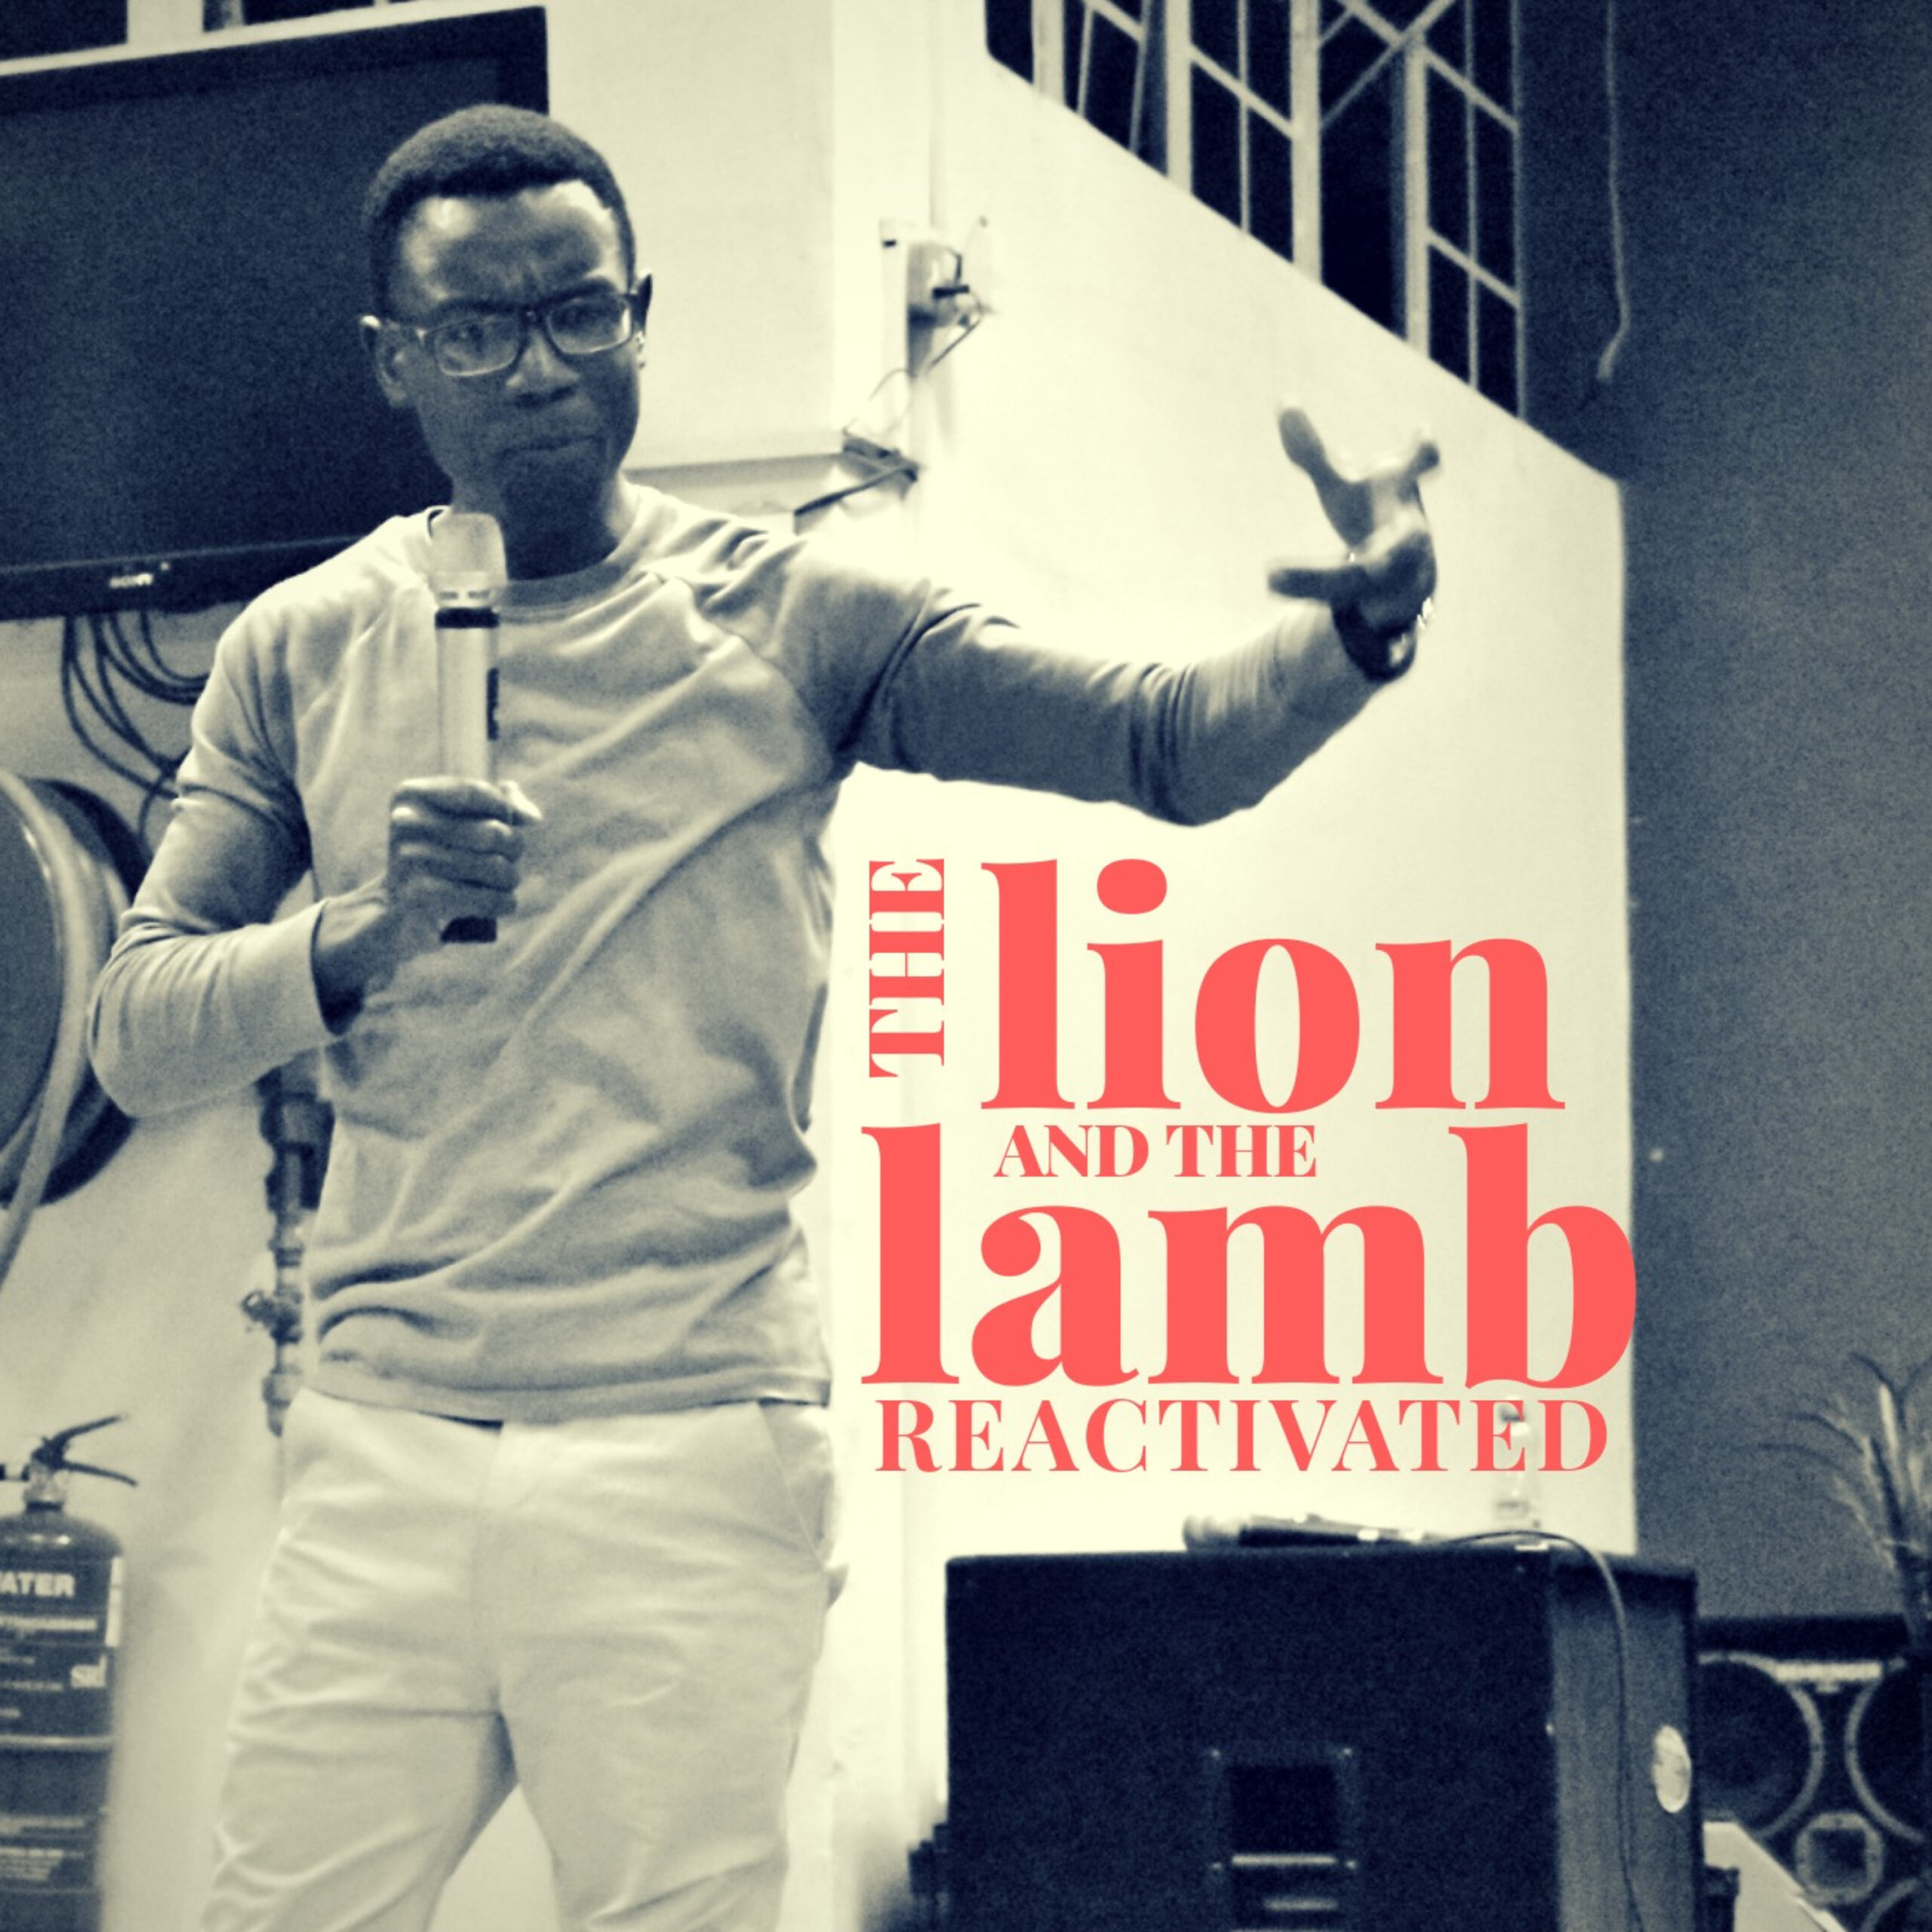 The Lion and the Lamb Reactivated